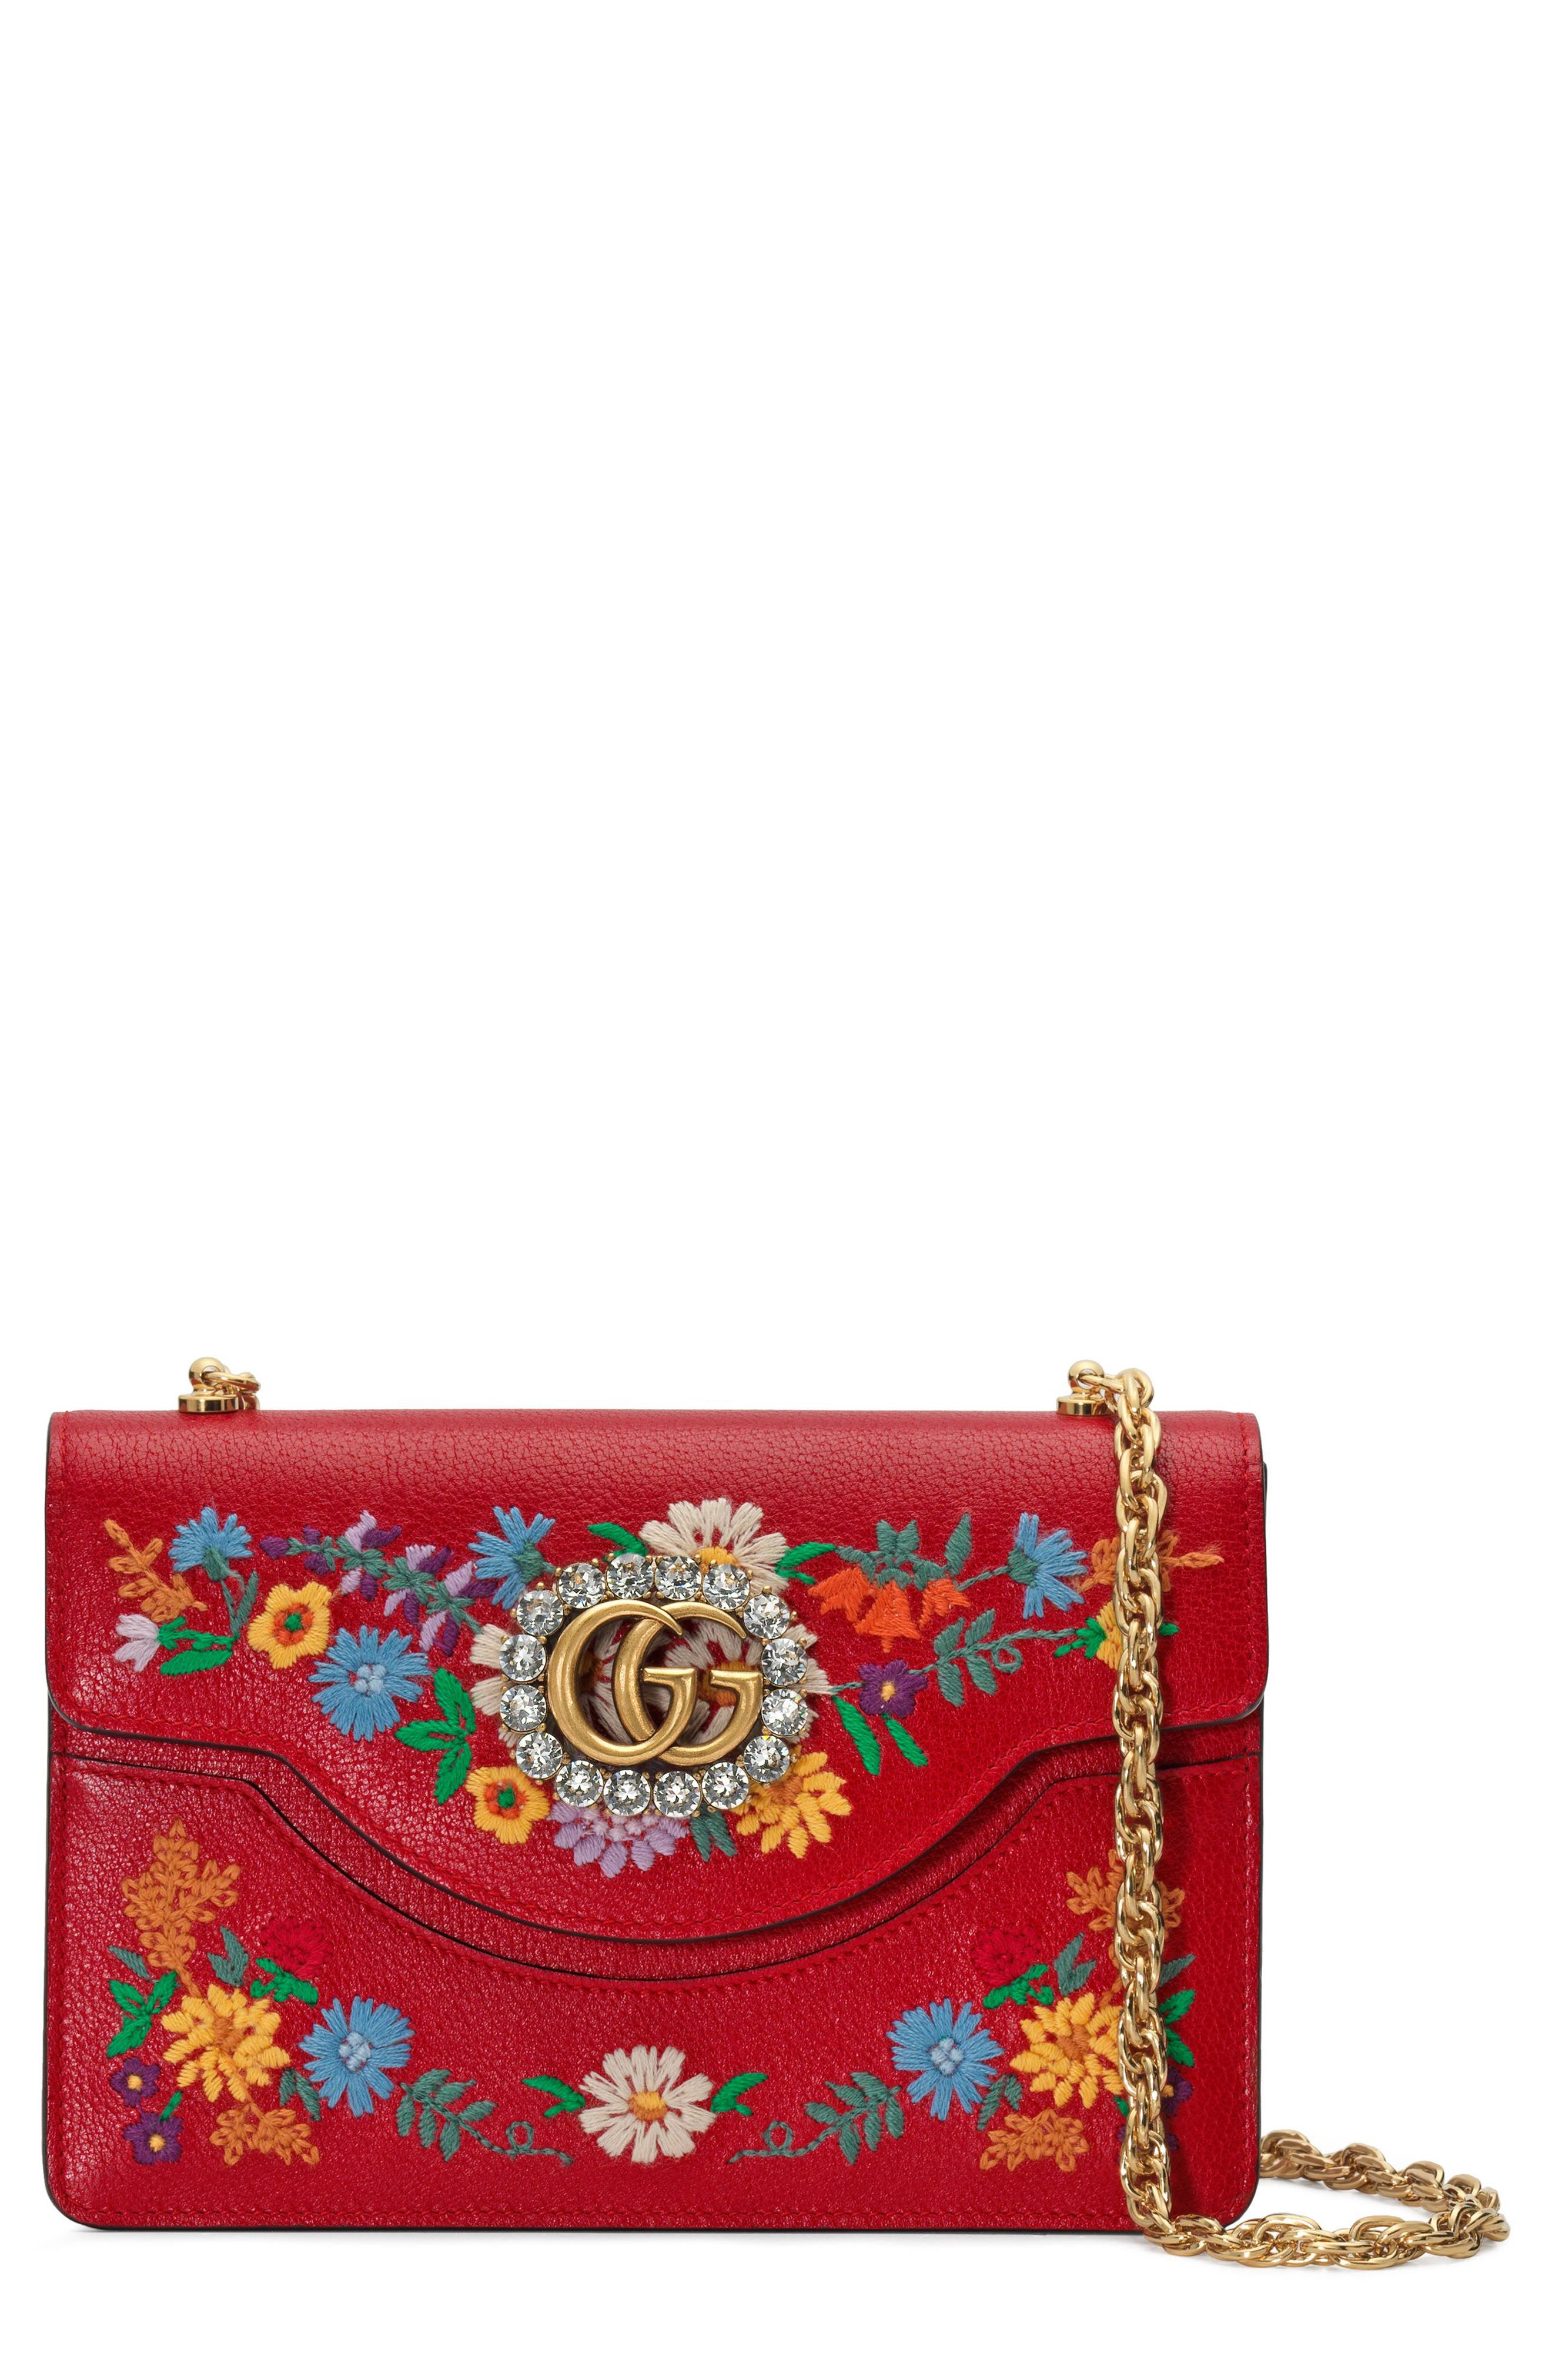 Small Linea Ricami Floral Embroidered Shoulder Bag,                         Main,                         color, Hibiscus Red Multi